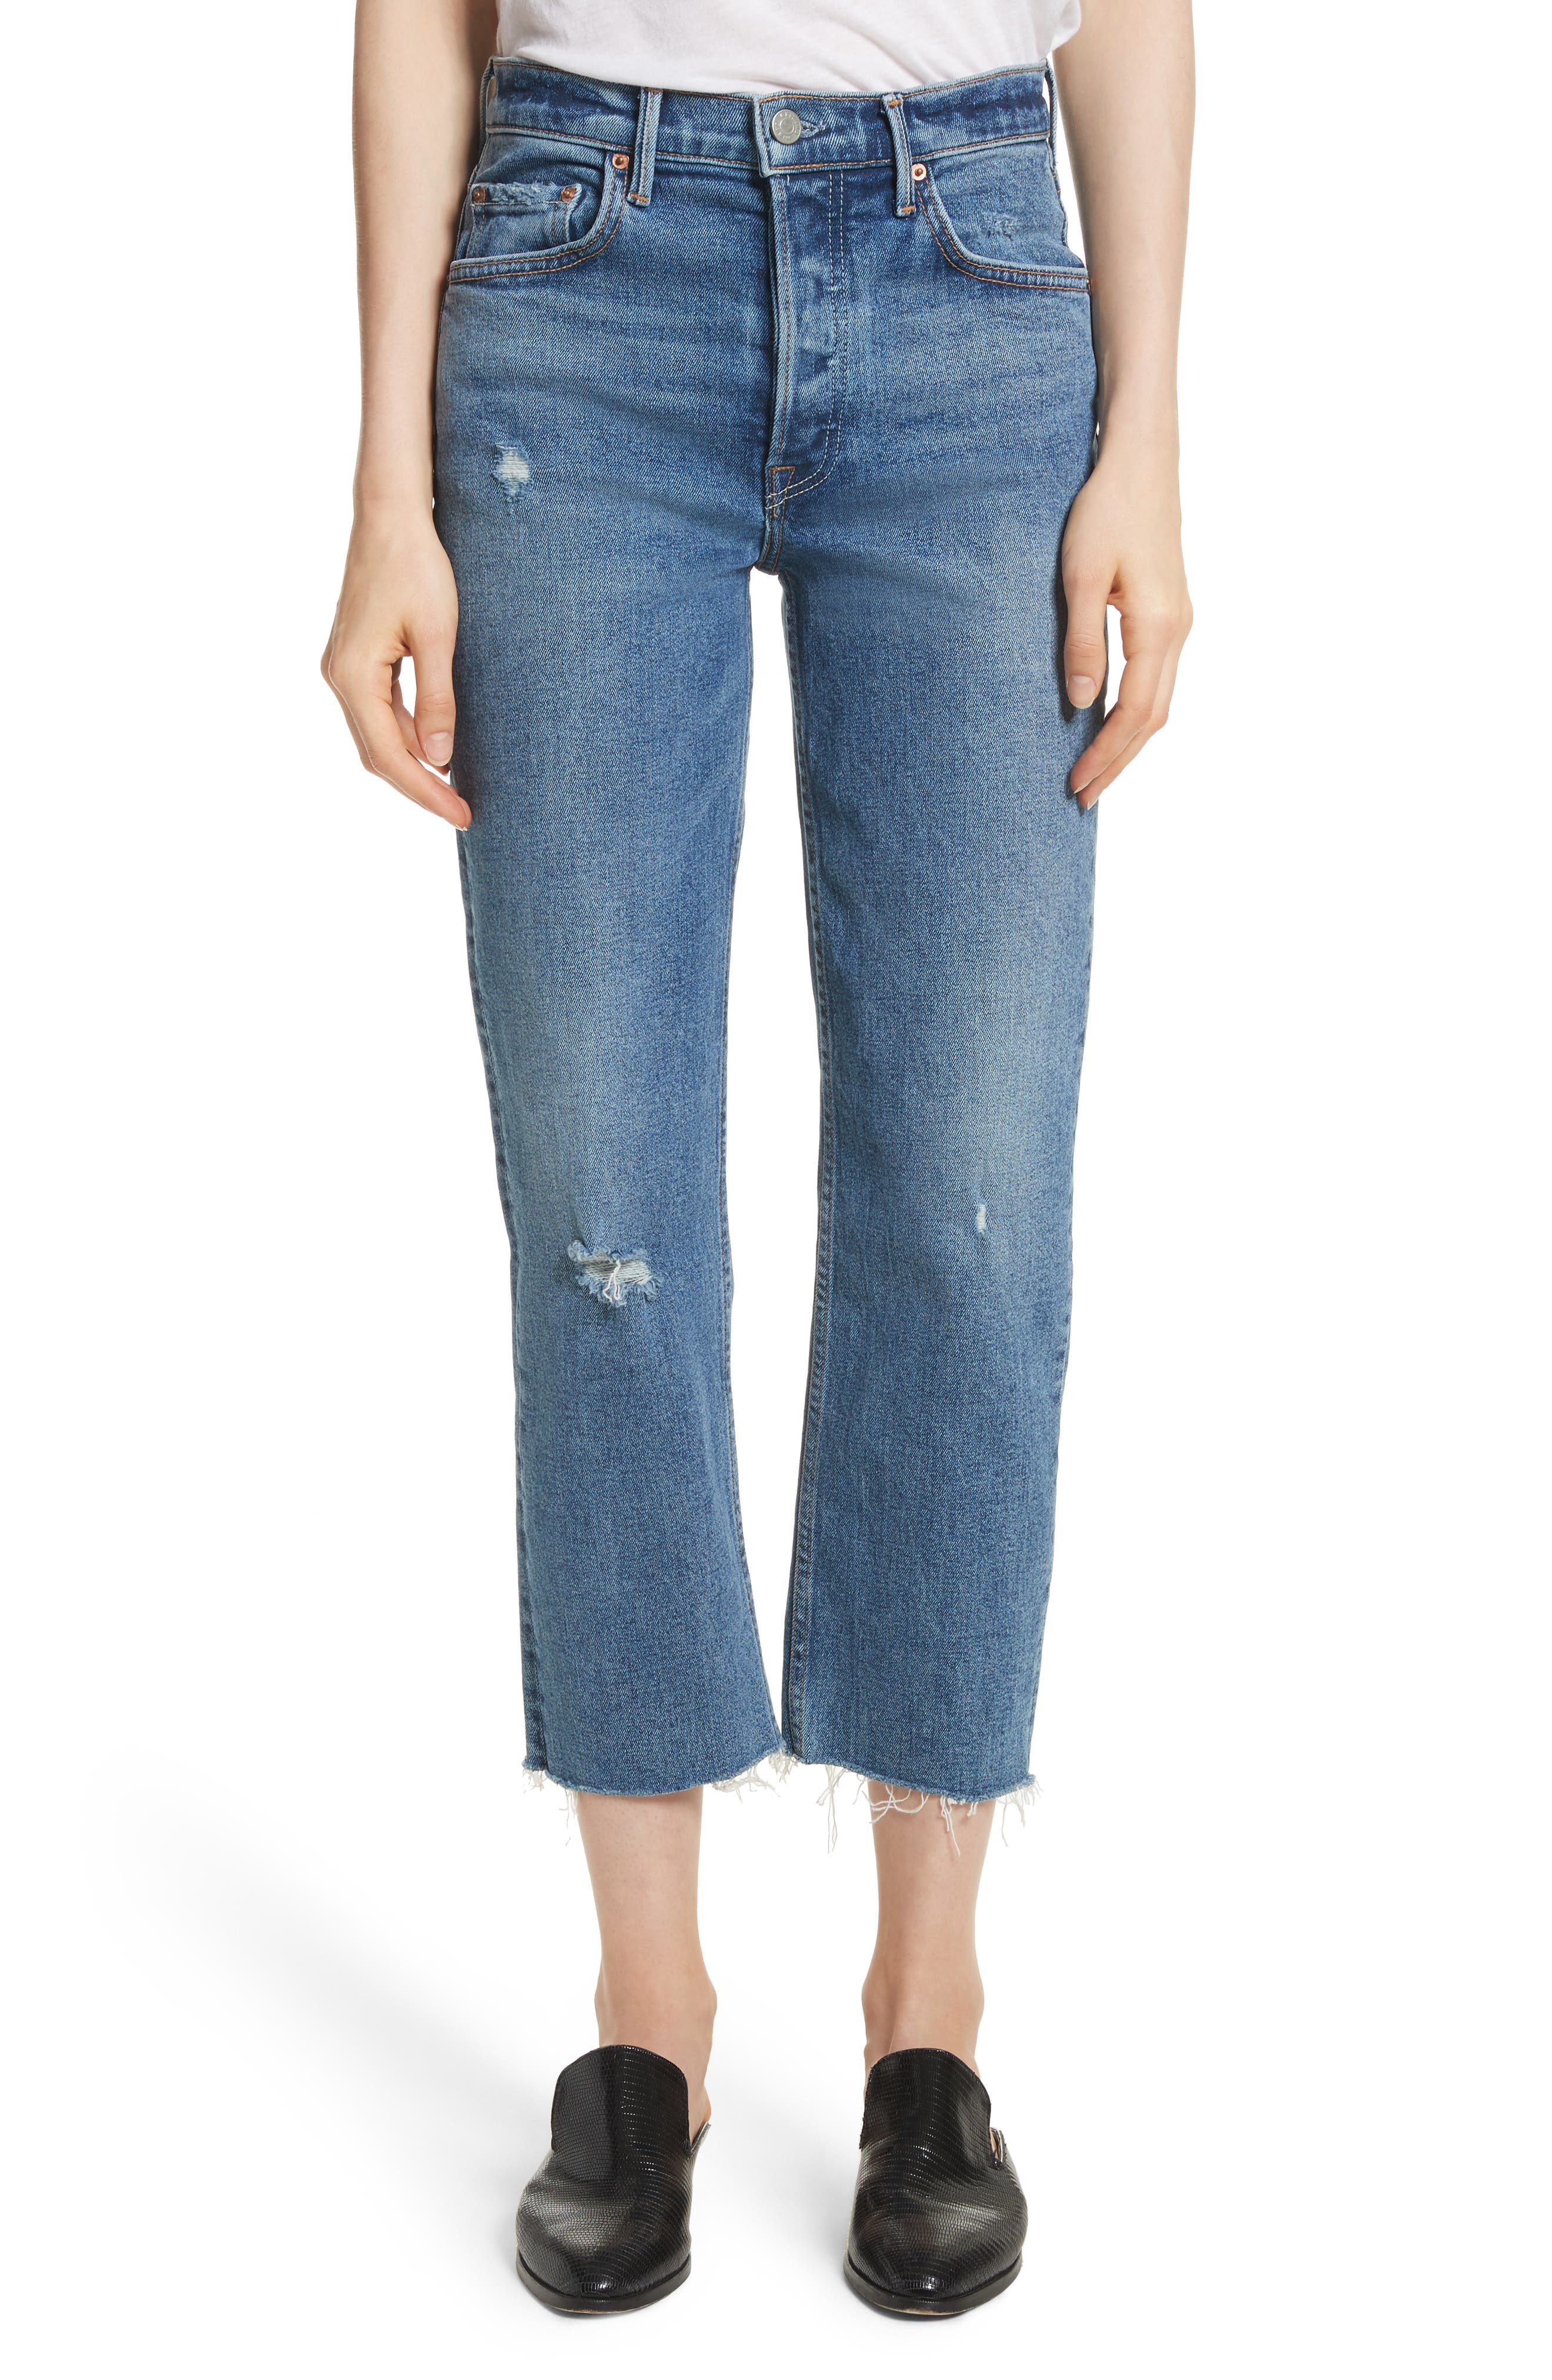 Helena Distressed Rigid High Waist Straight Jeans,                             Main thumbnail 1, color,                             470